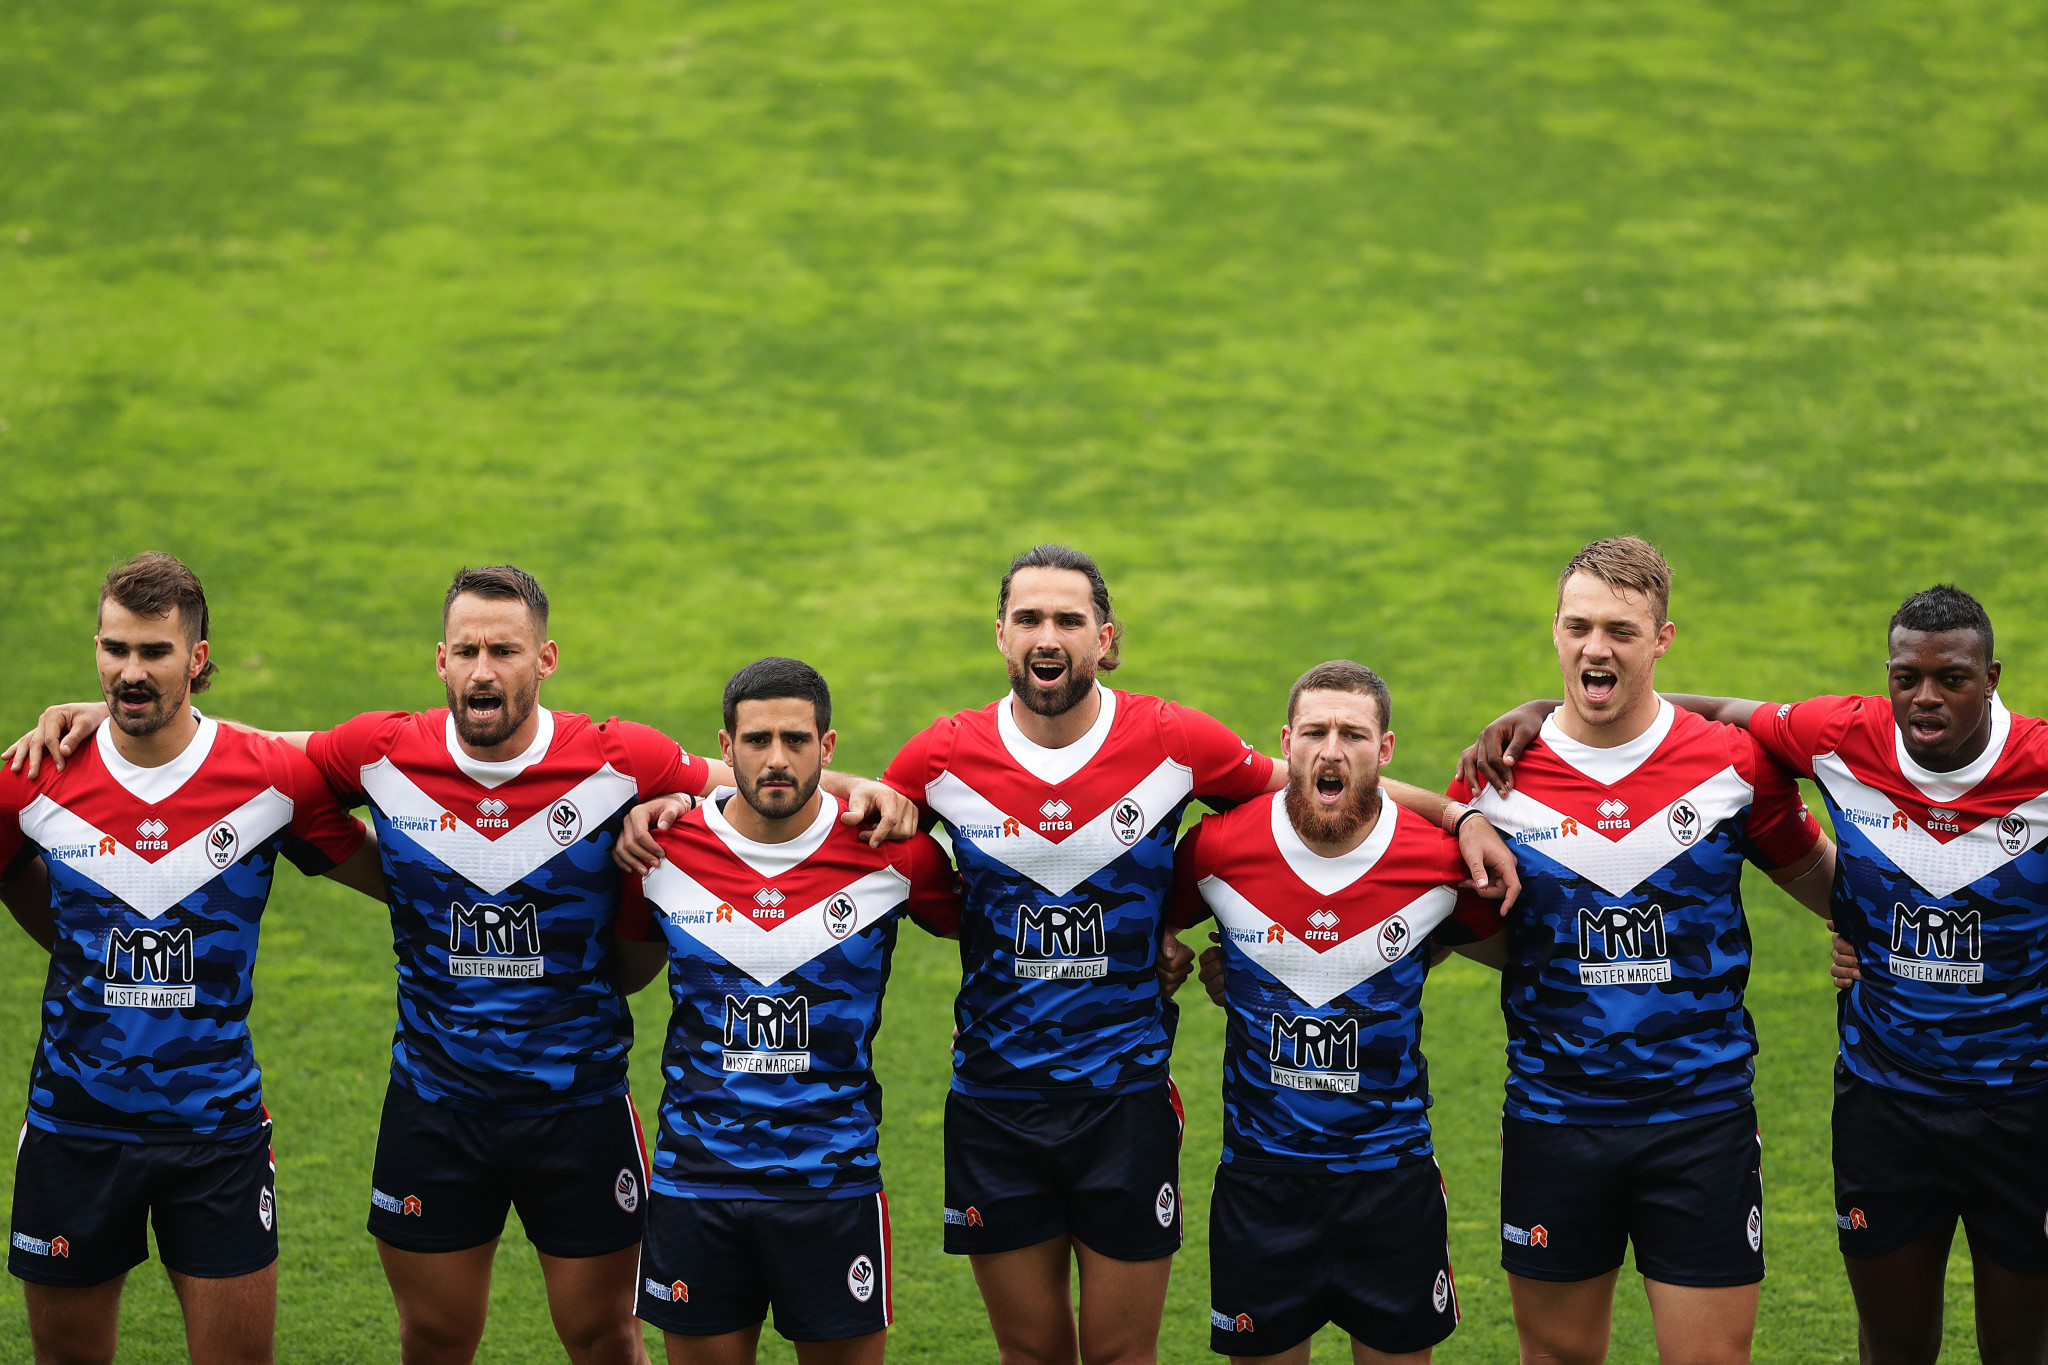 French public warmly back hosting 2025 Rugby League World Cup, according to poll